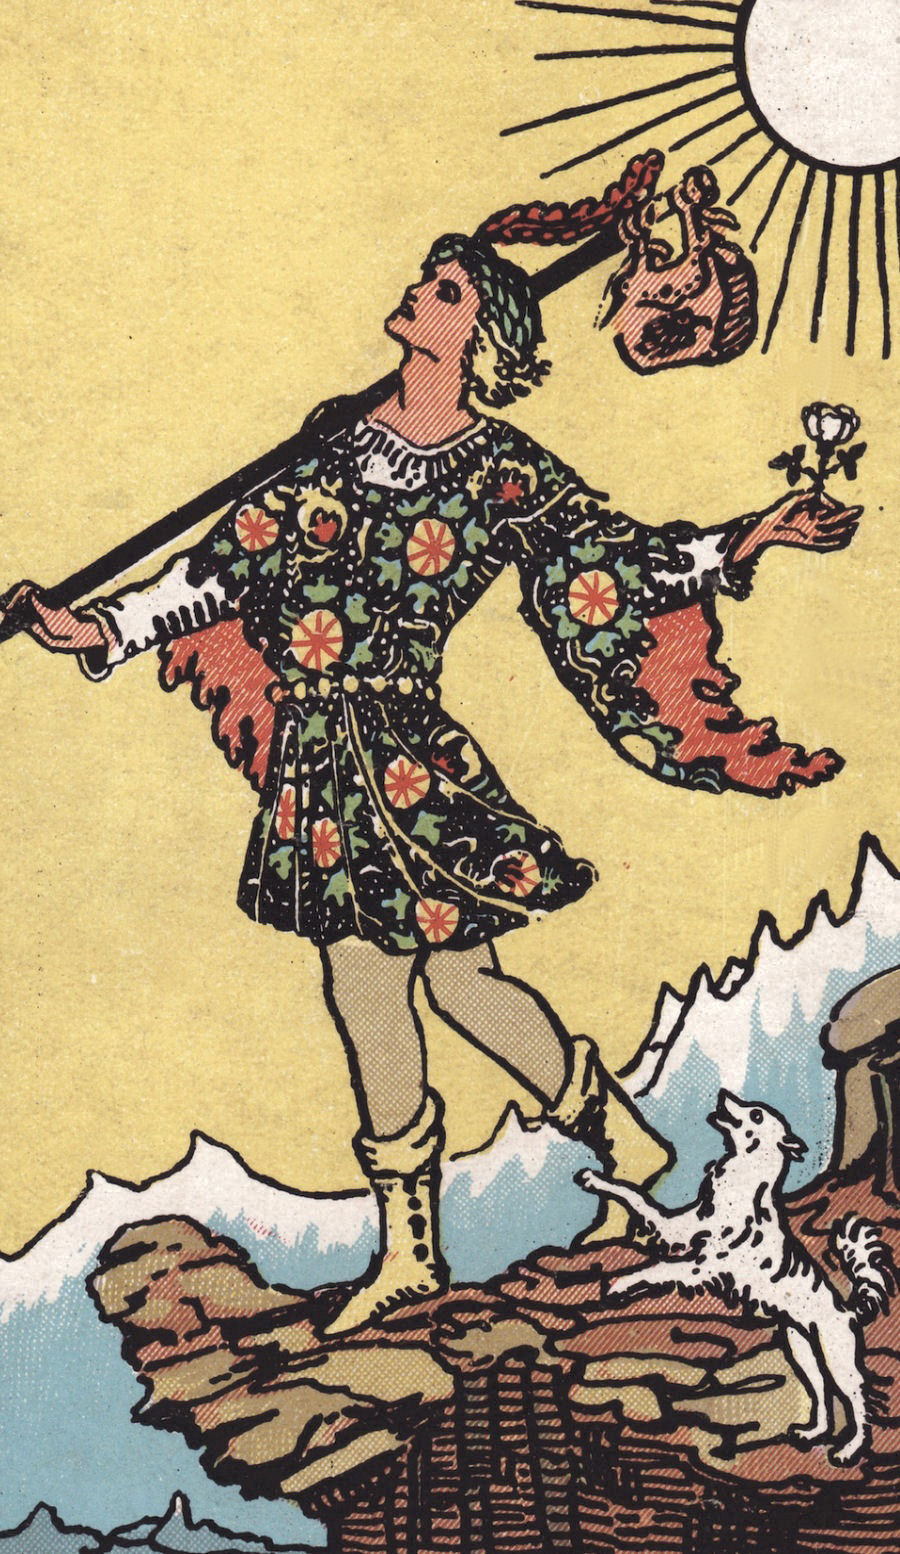 Tarot Card Meanings for The Fool from the Rider Waite Deck